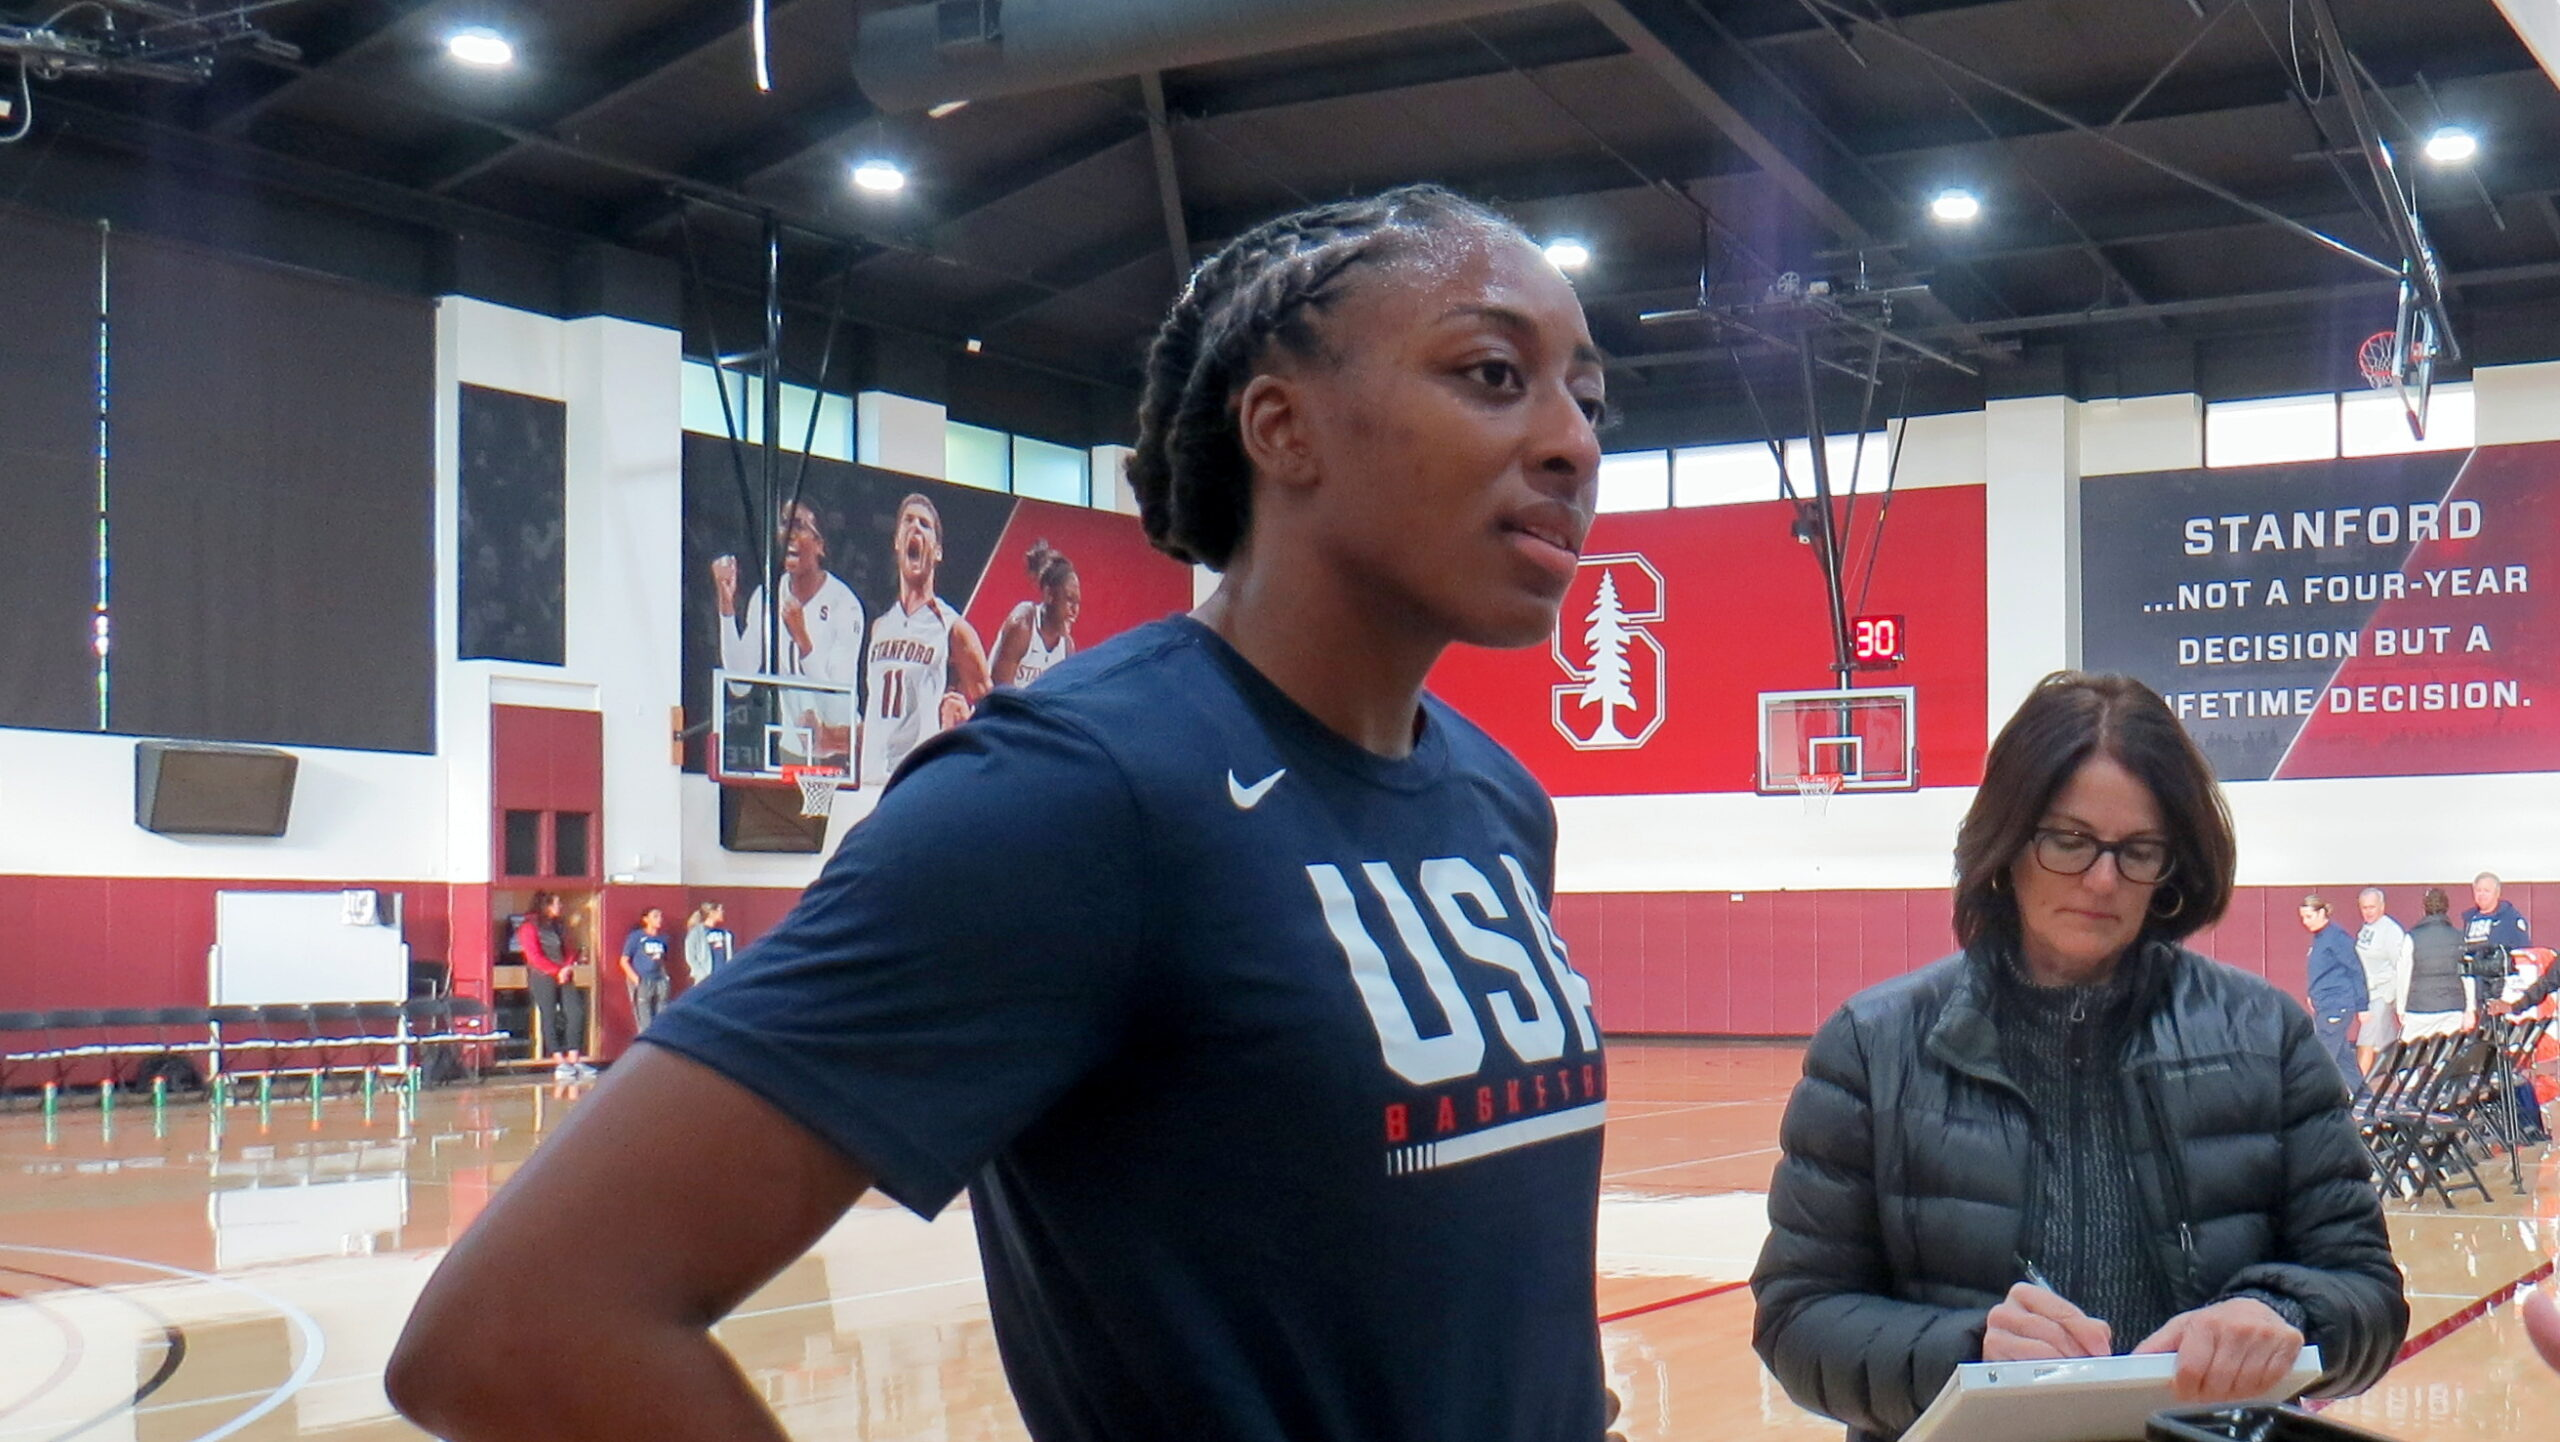 WNBPA re-elects Nneka Ogwumike as president, Layshia Clarendon as first vice president